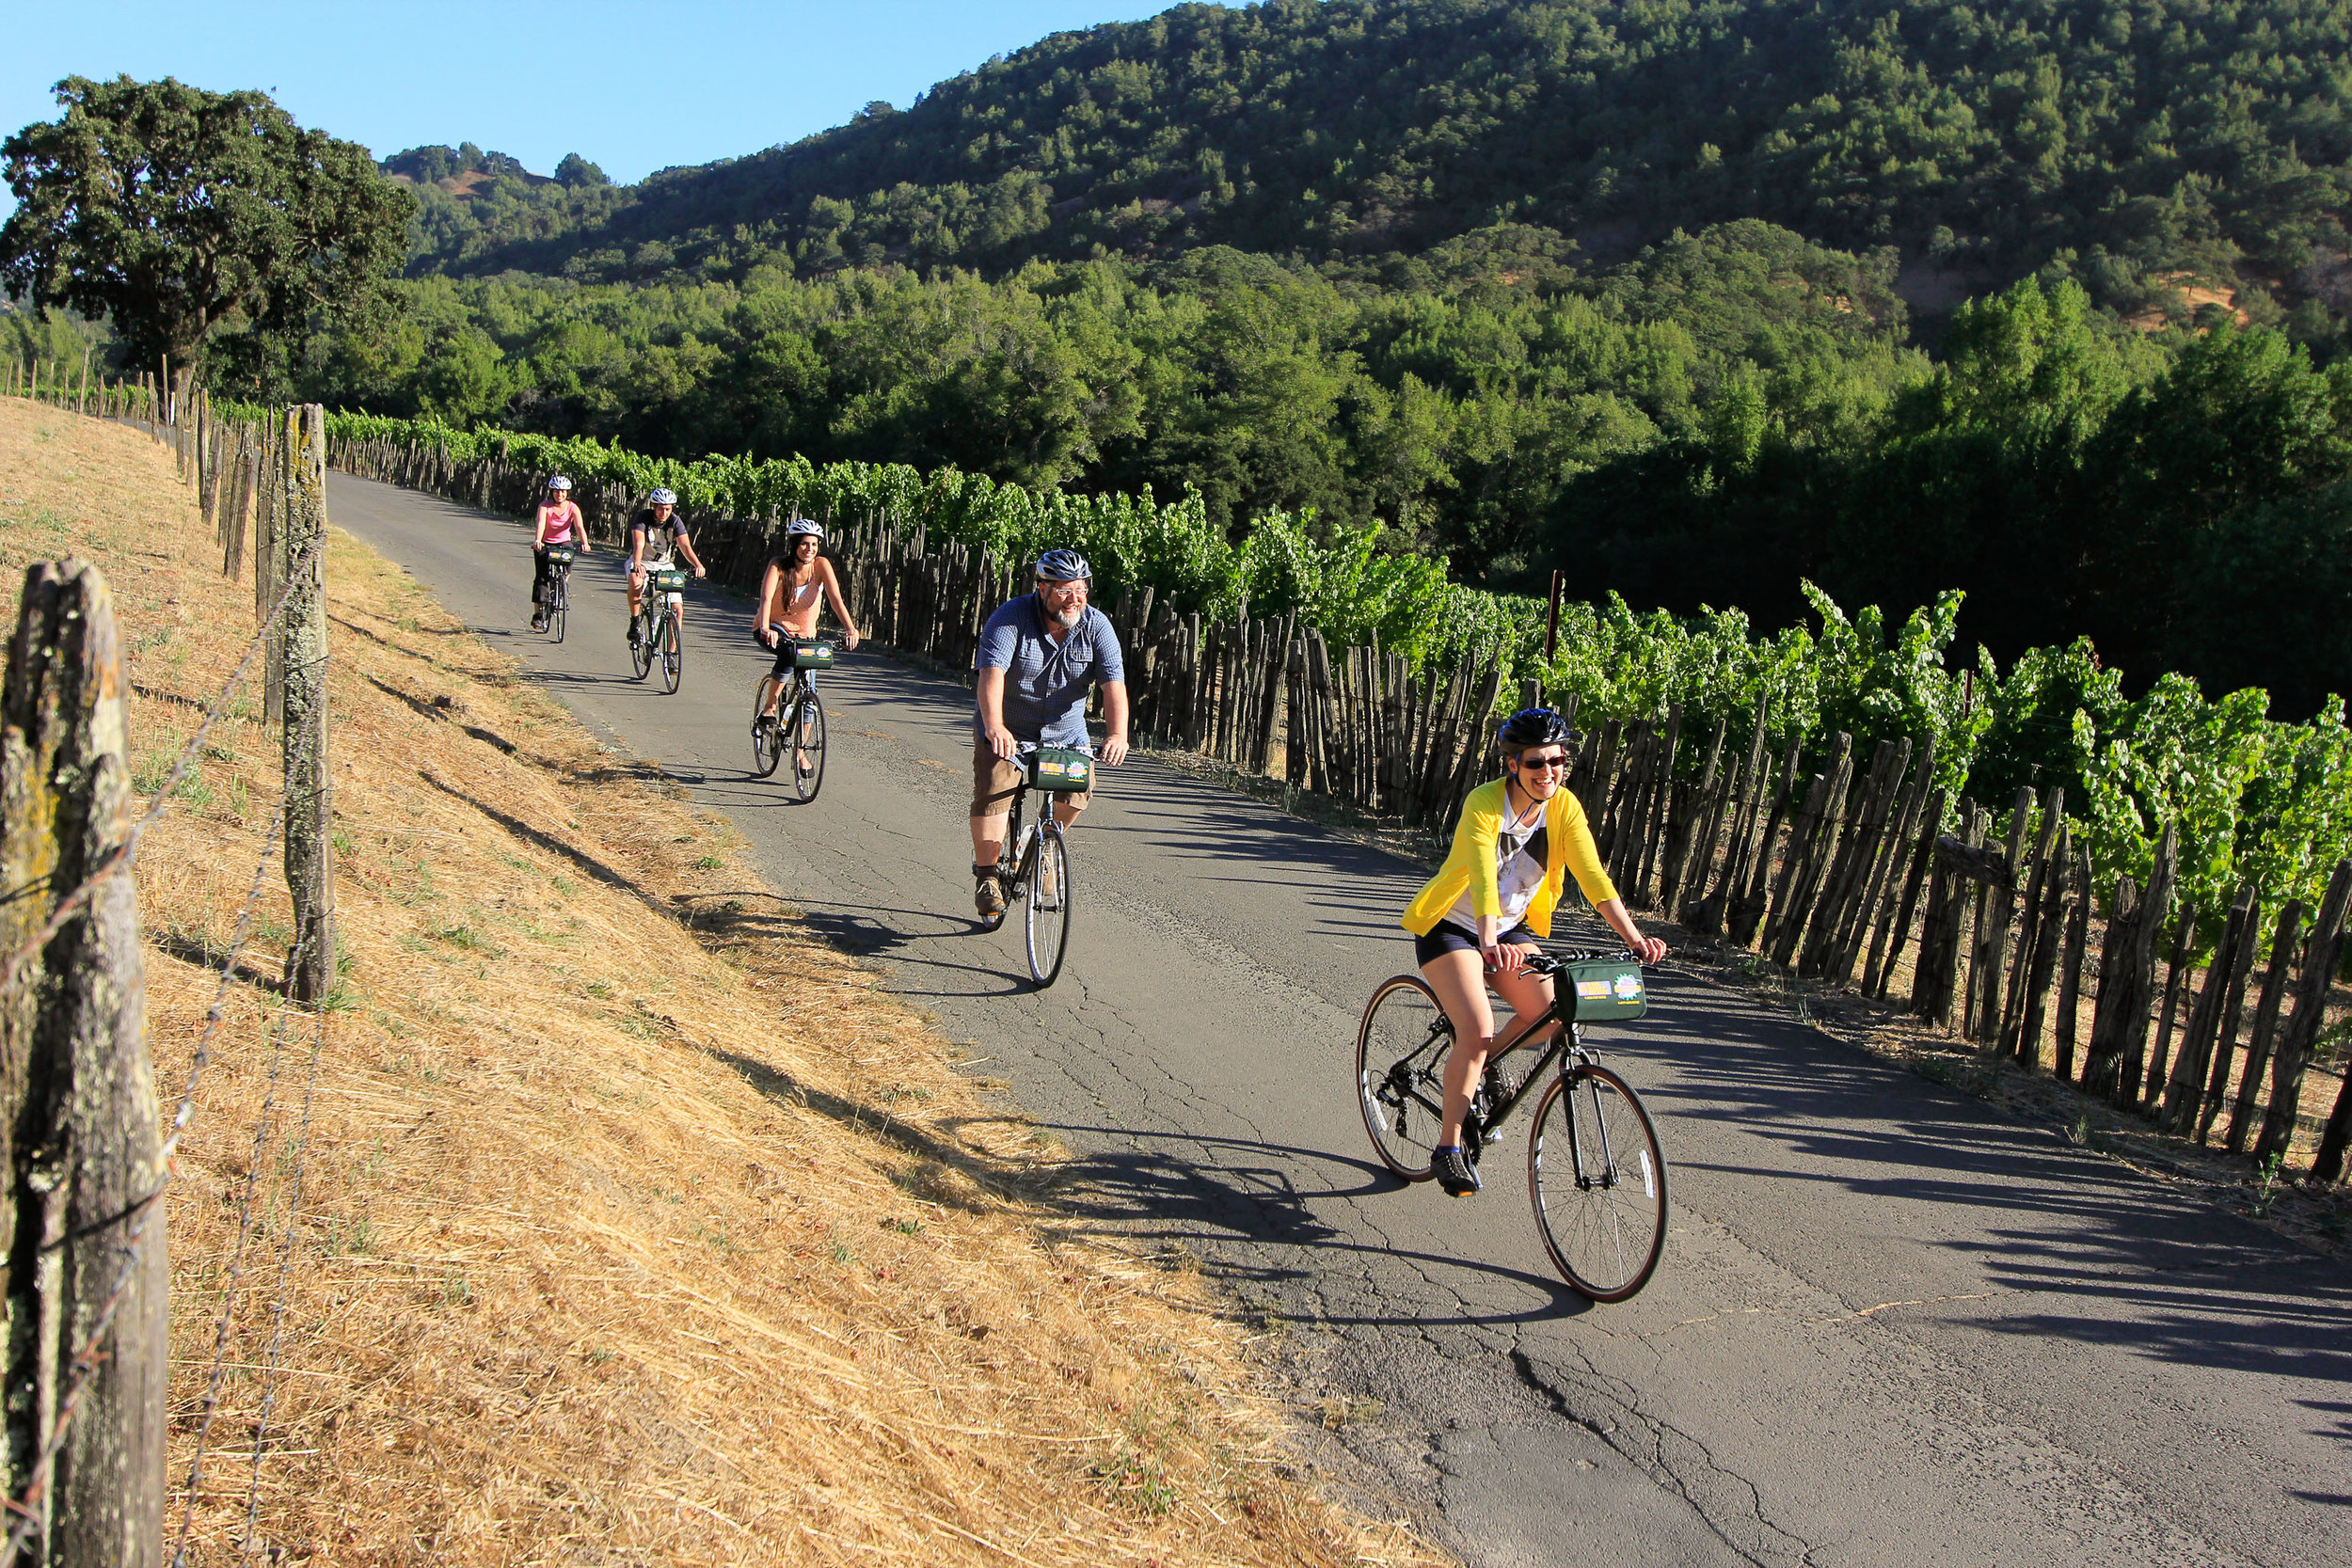 bike-riding-through-vineyards